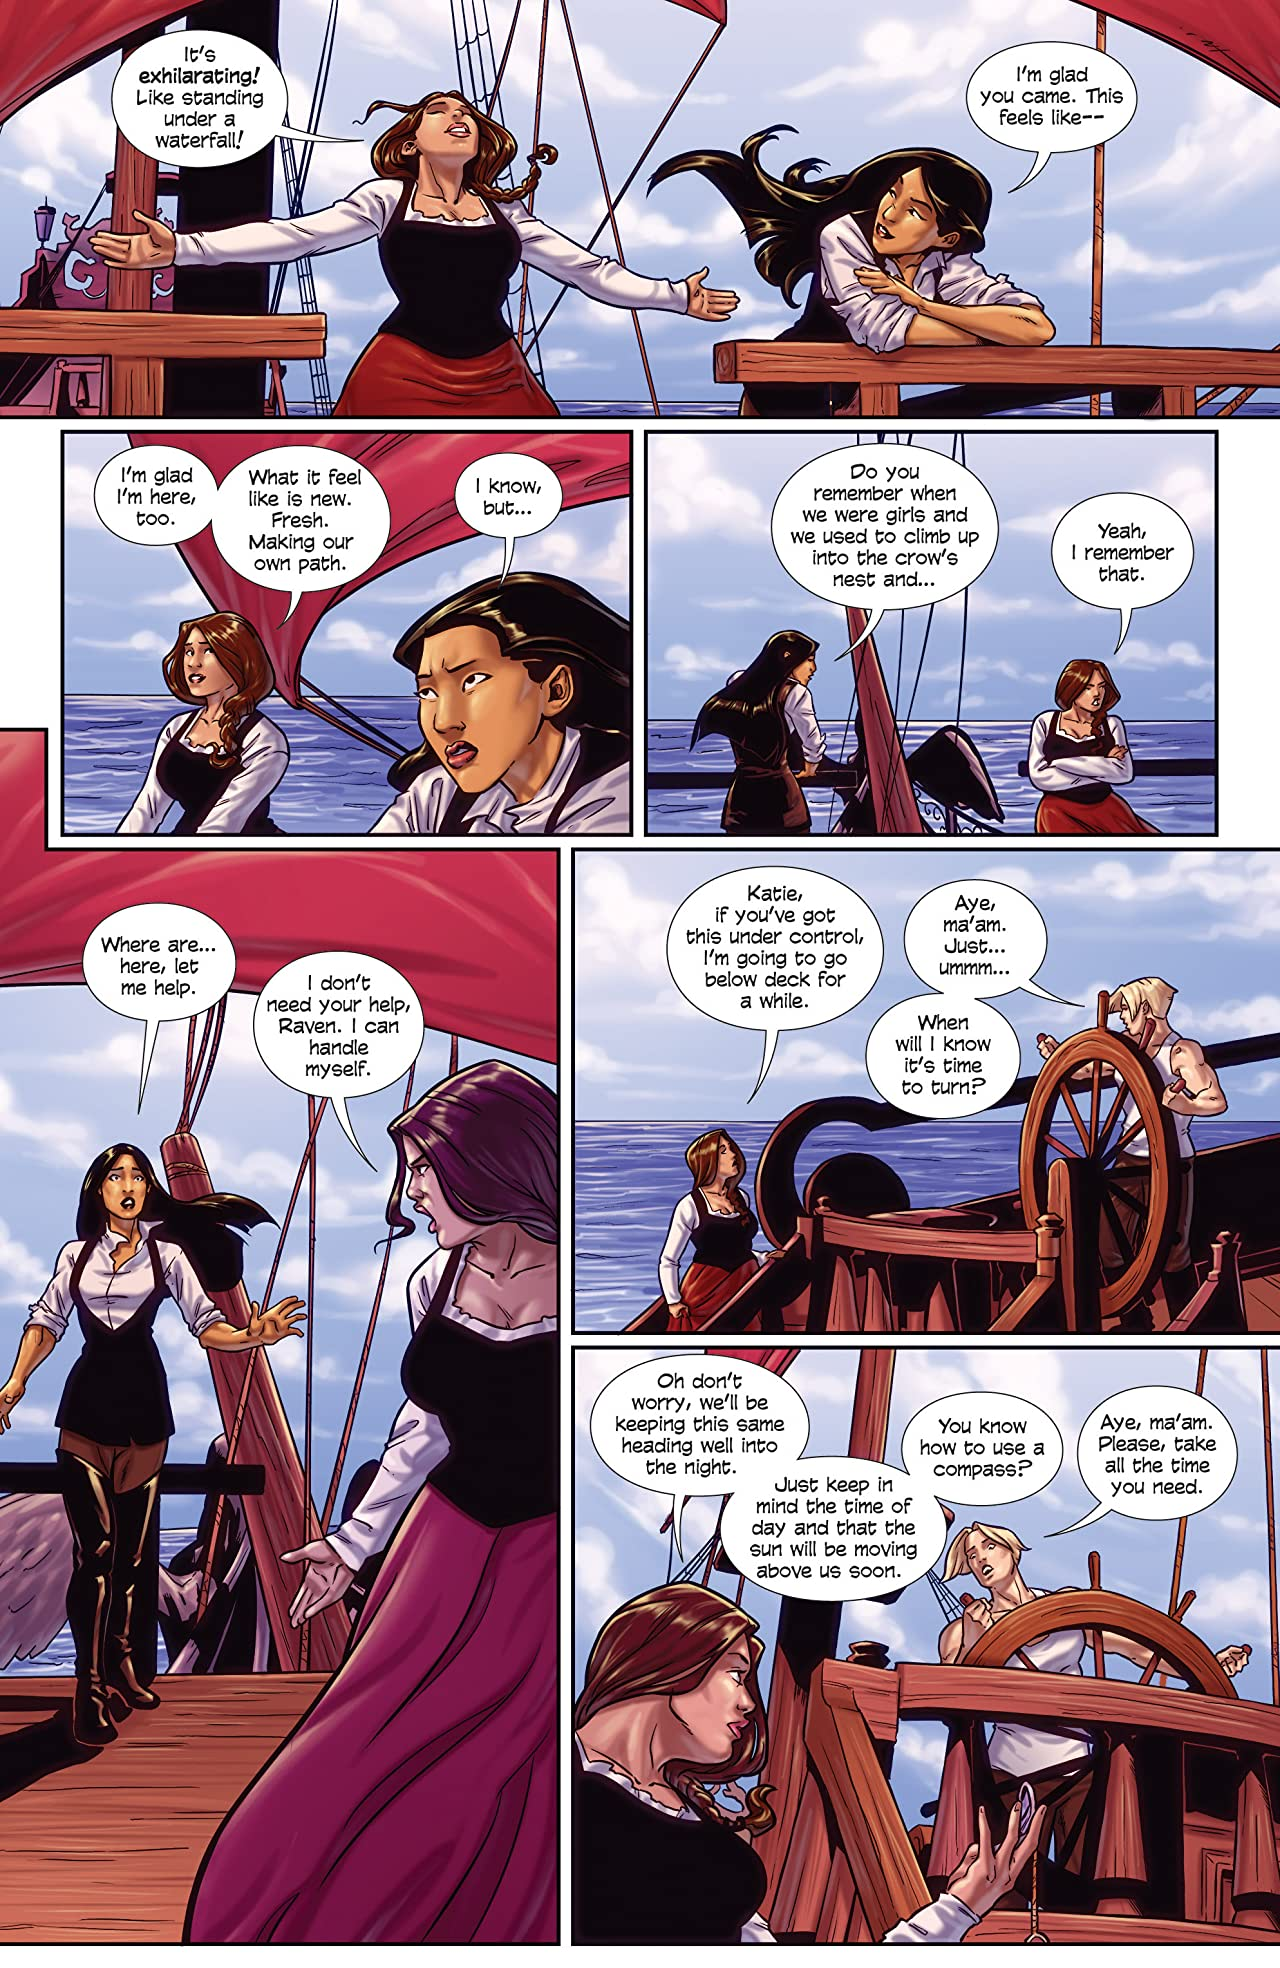 Princeless- Raven: The Pirate Princess #5